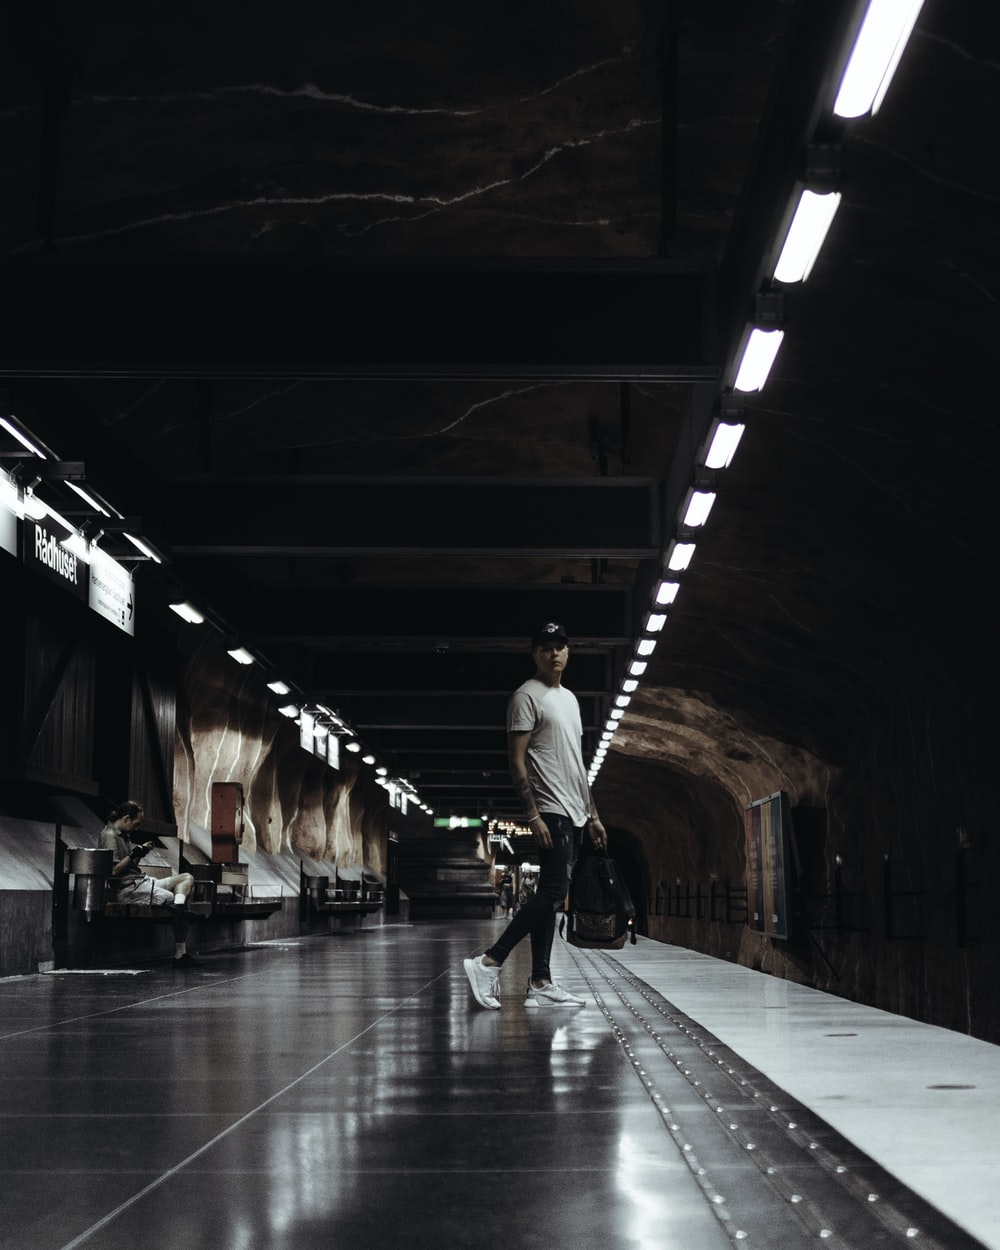 man standing on subway